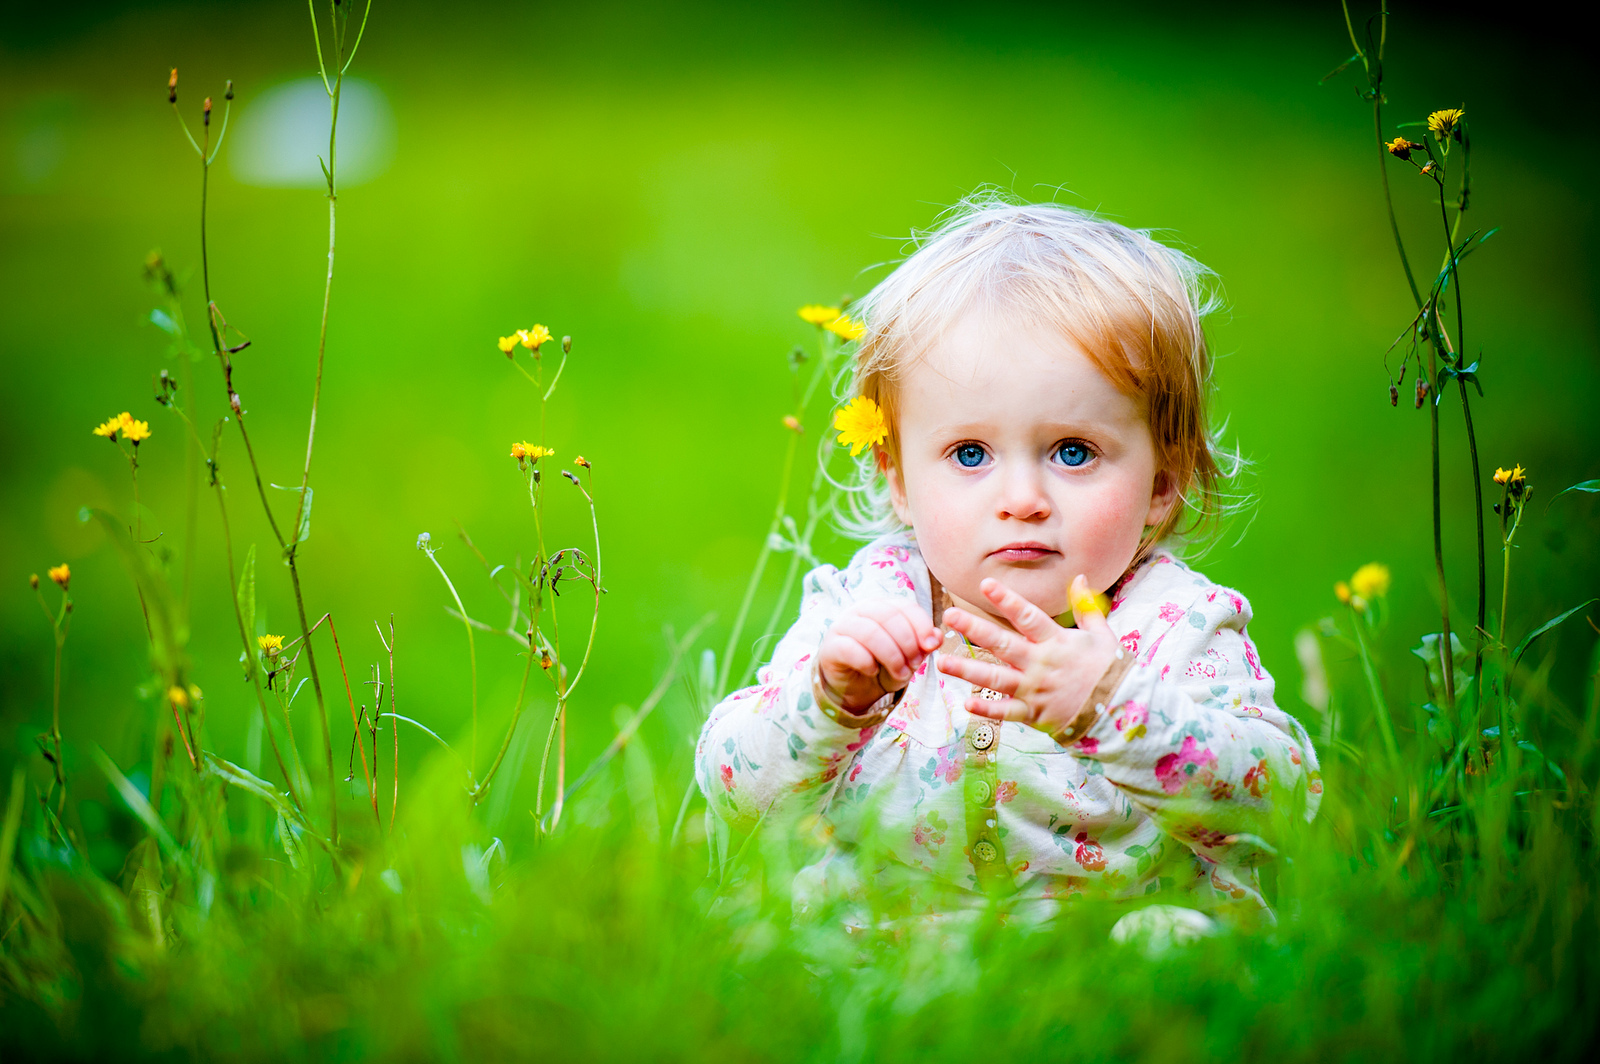 Baby Girl Sitting Grassland Wallpapers